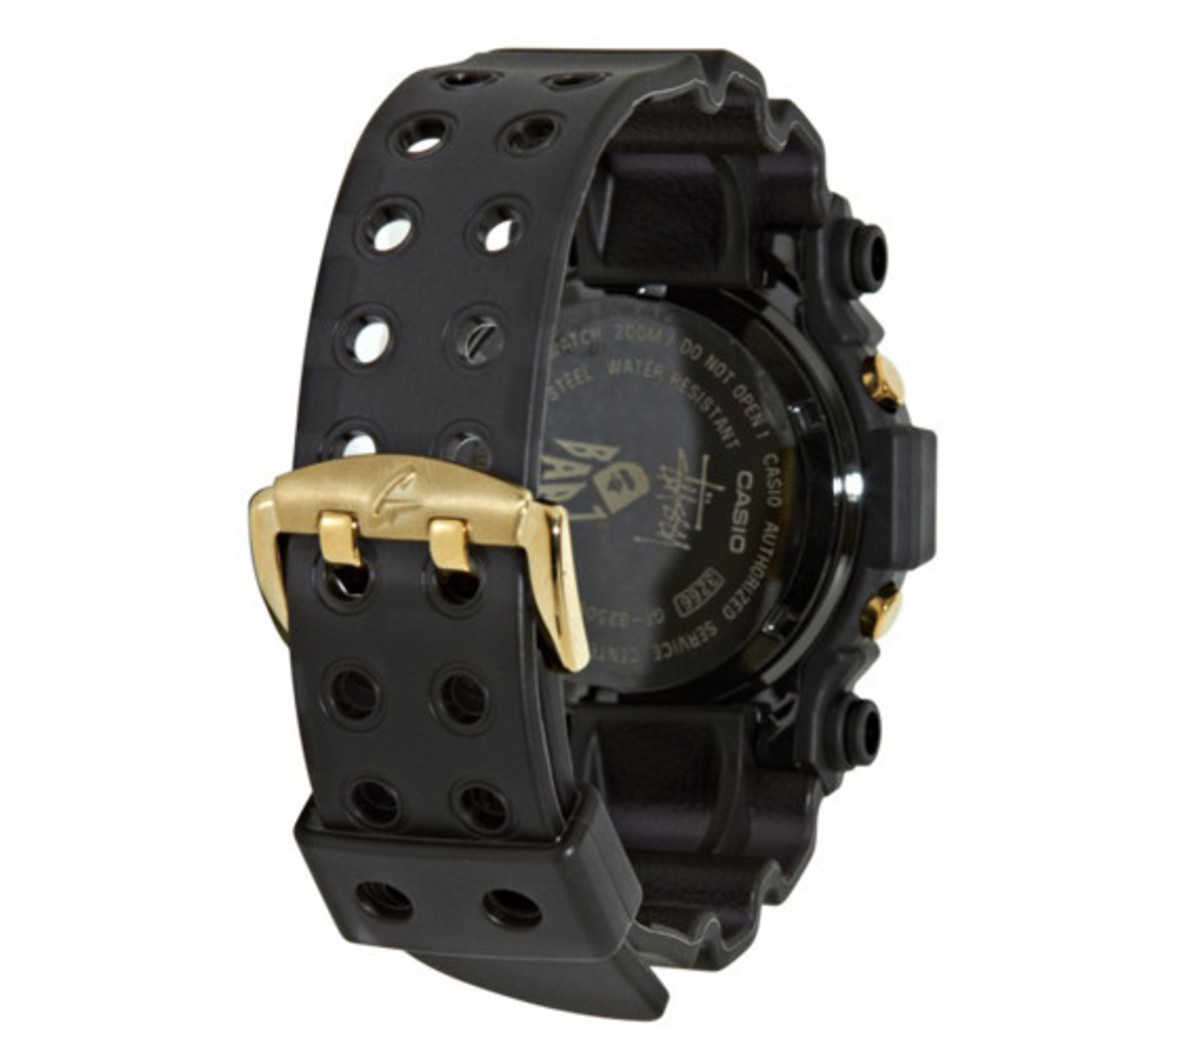 bape-stussy-g-shock-ill-collaboration-release-reminder-04